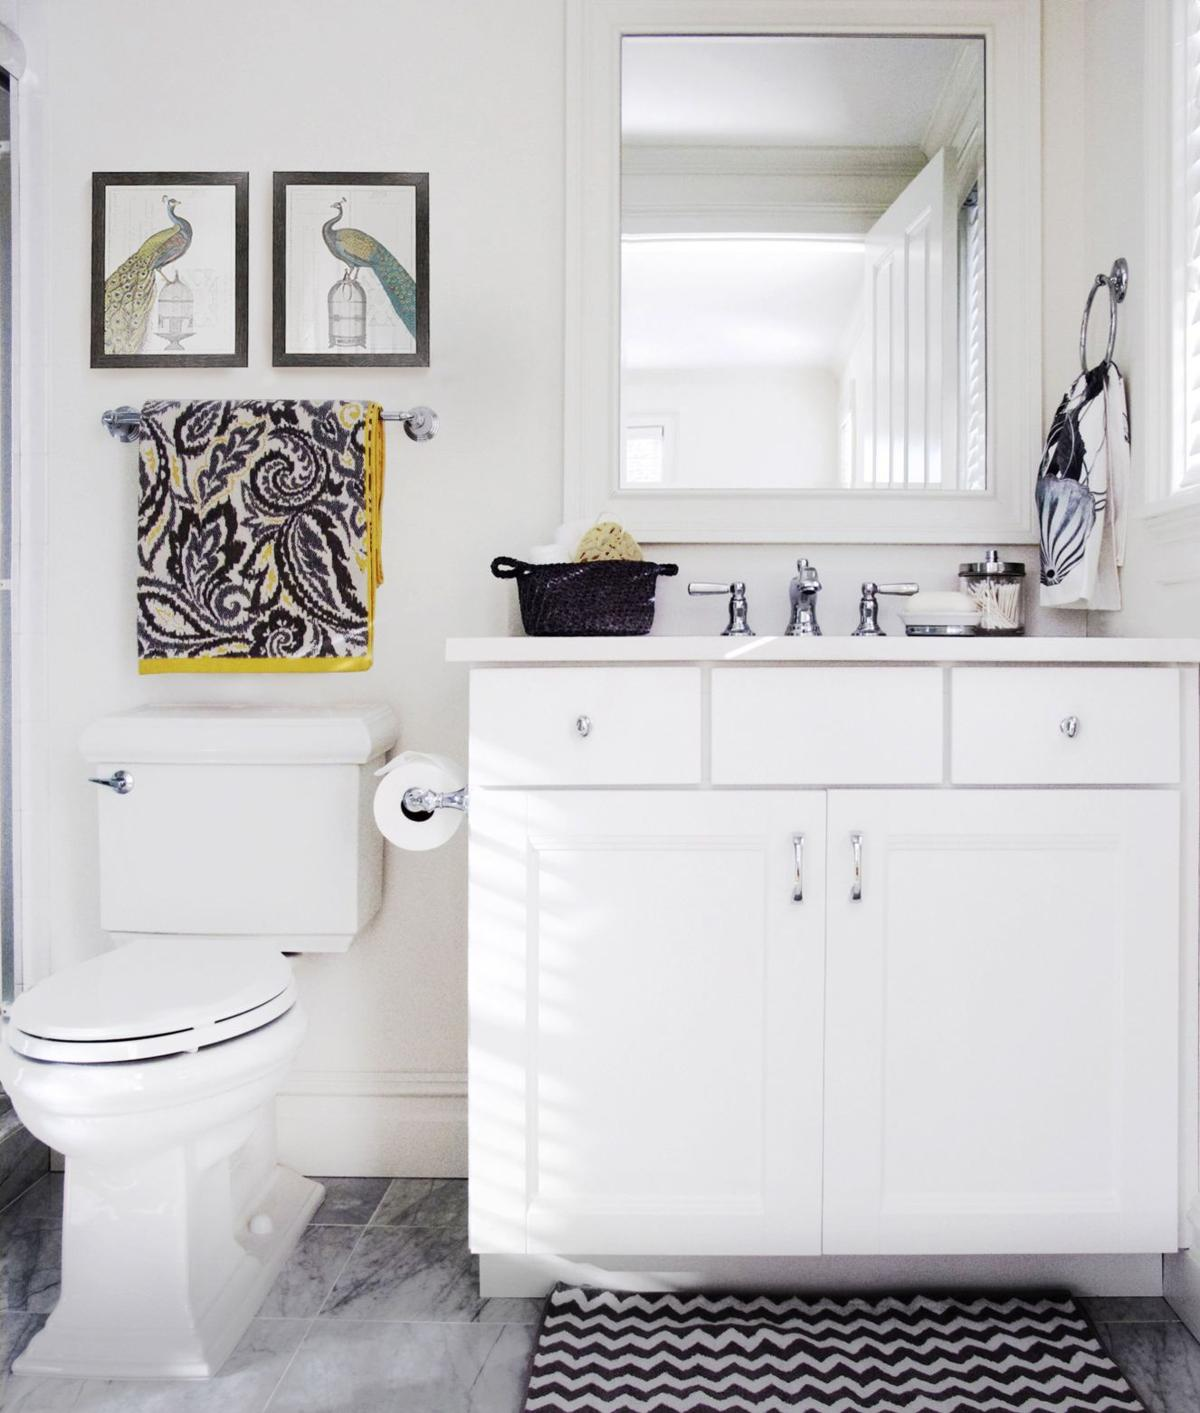 Five ideas to freshen a bathroom on a budget | Inspired Living ...